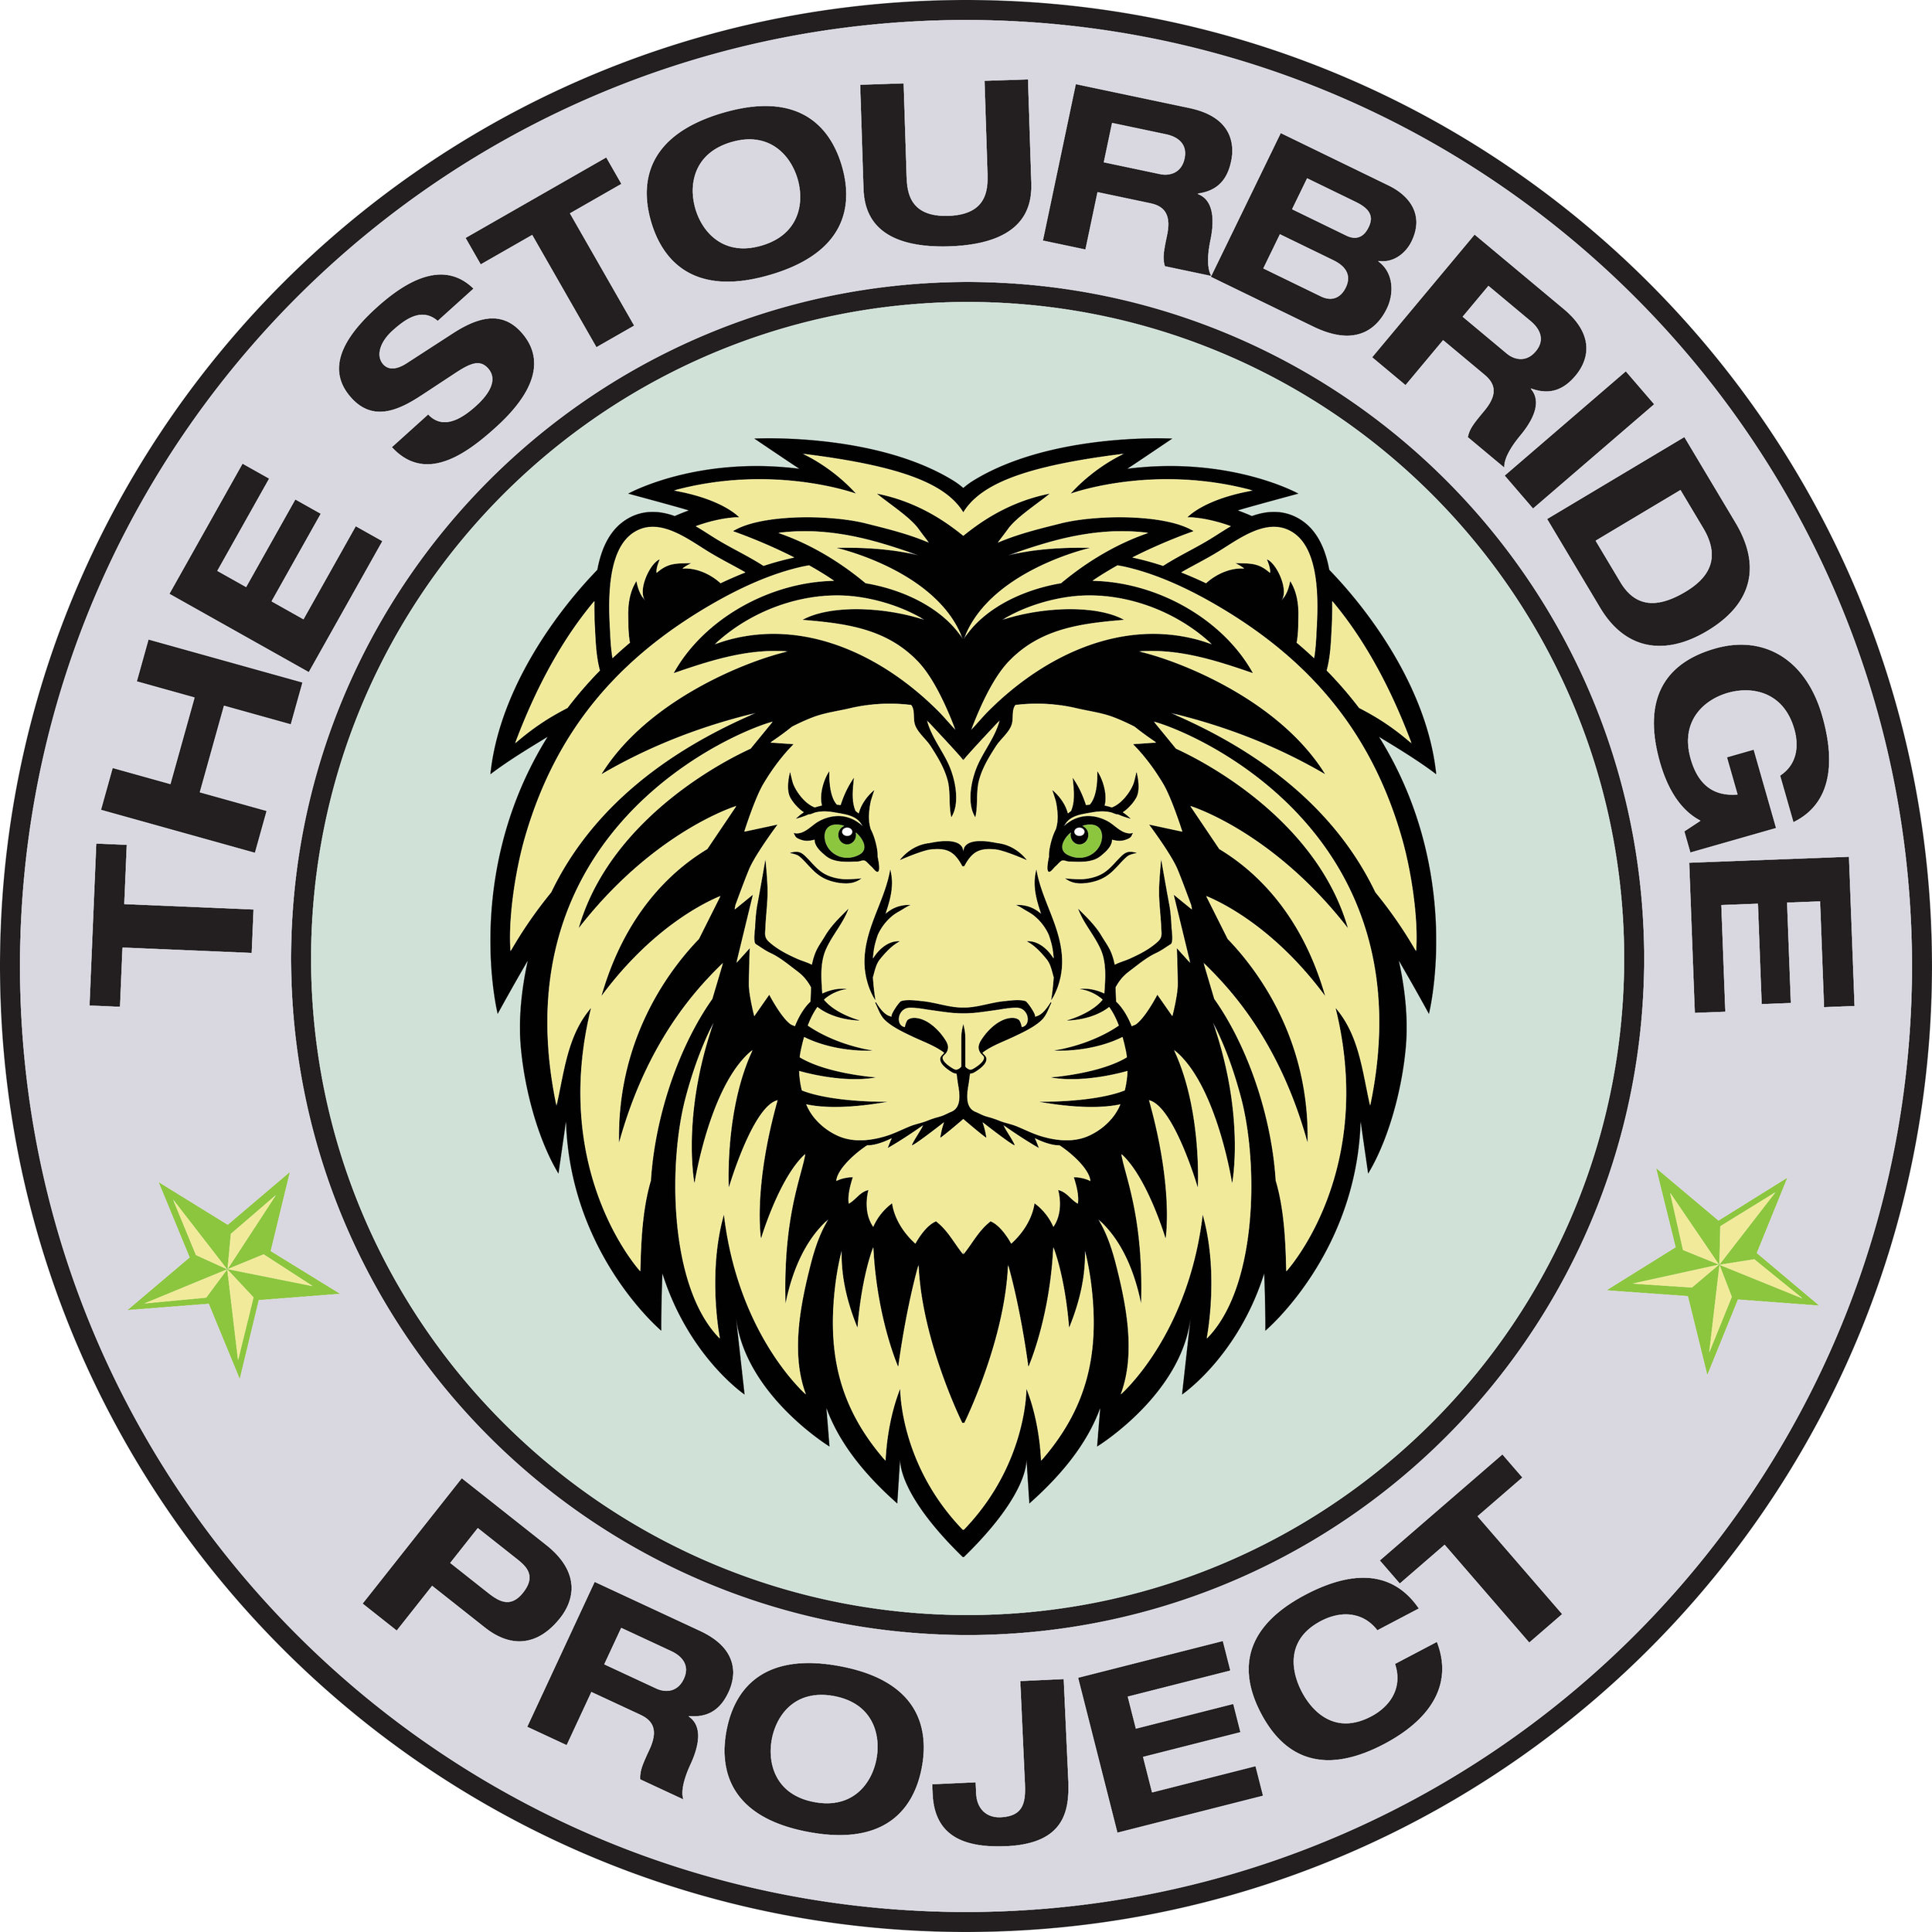 Stourbridge Project Logo.jpg